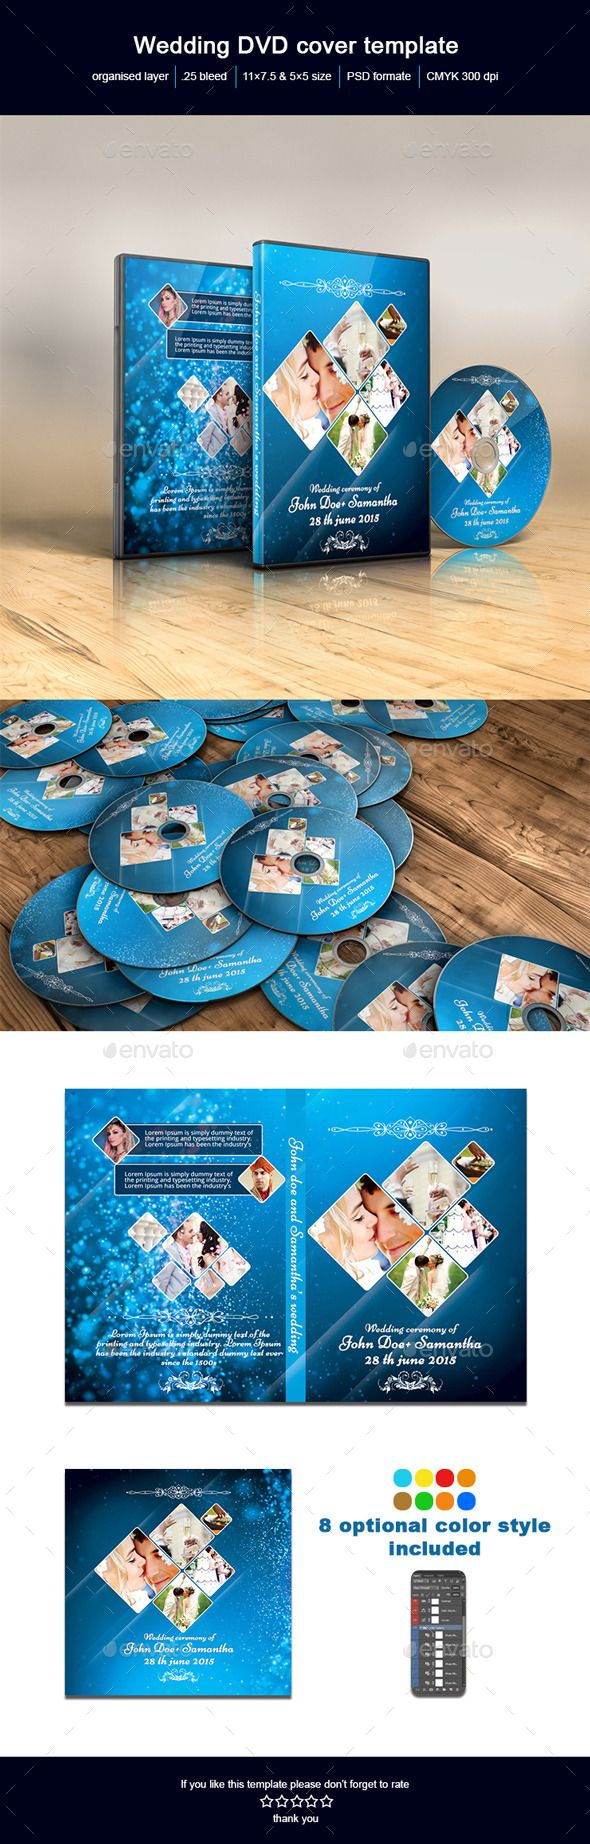 13 best images about wedding dvd cover on pinterest packaging